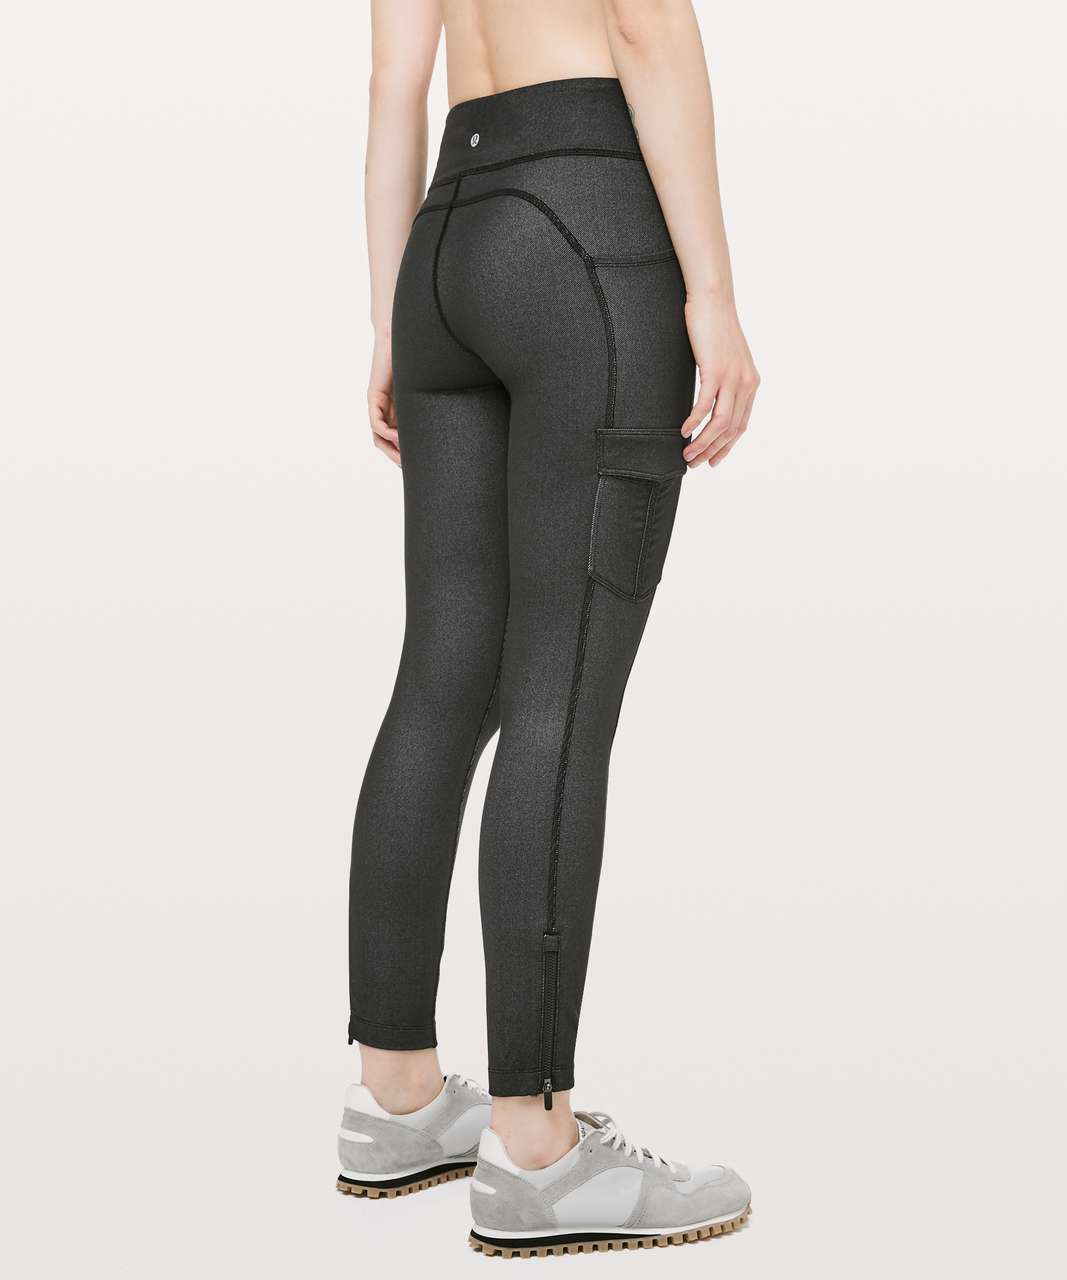 "Lululemon Scenic Route 7/8 Tight *25"" - Black"